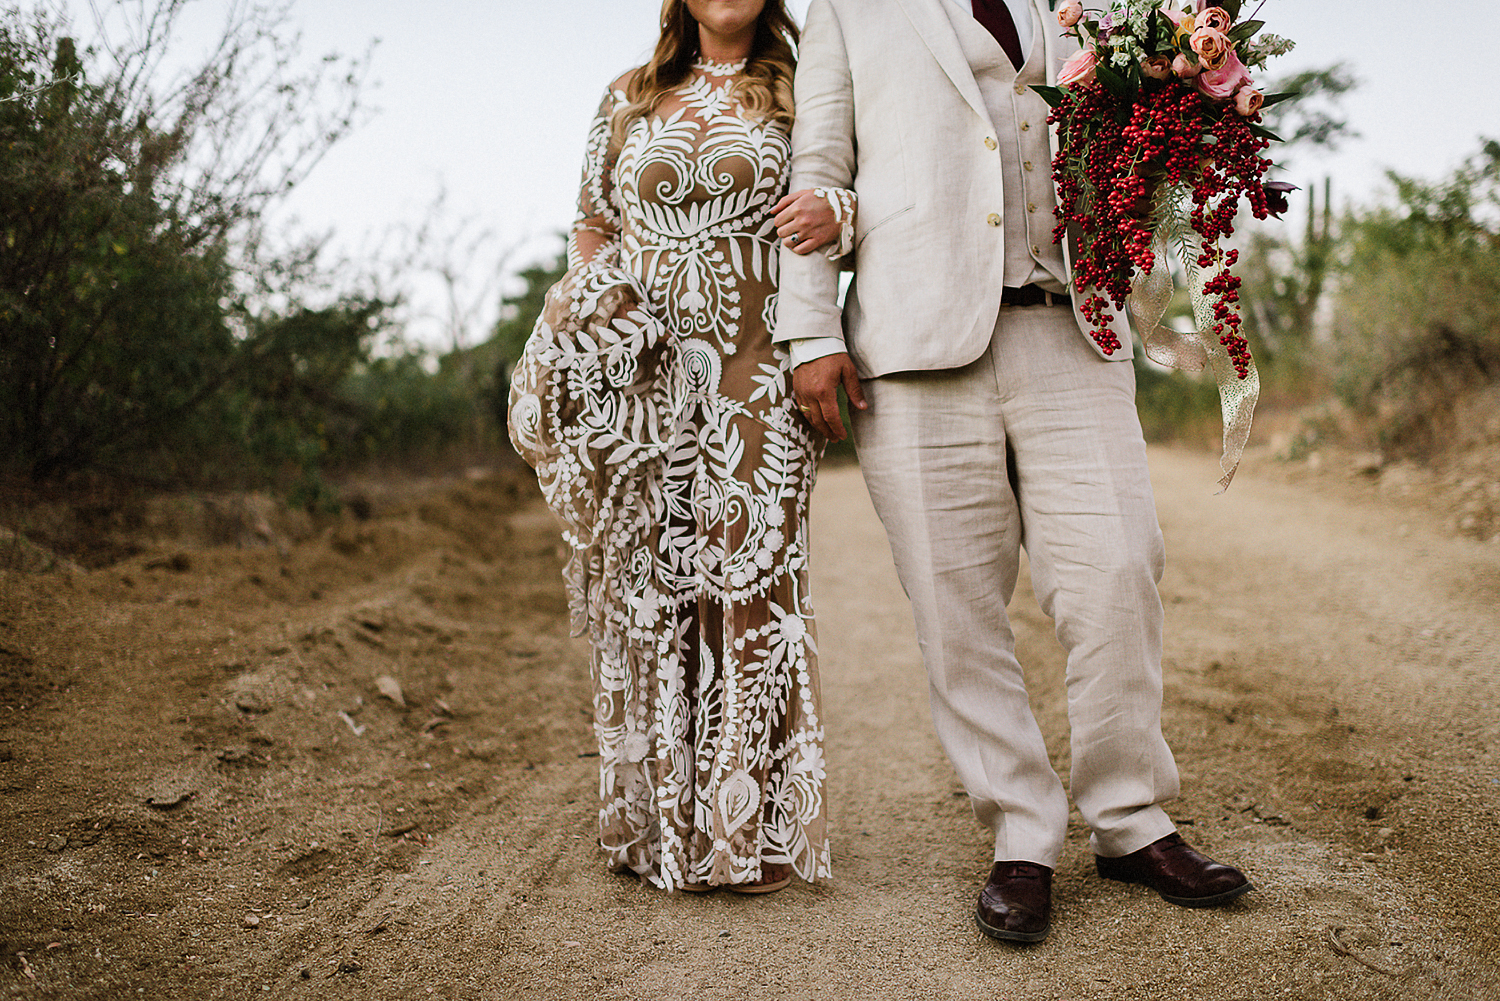 destination-wedding-cabo-san-lucas-ventanas-private-residence-alternative-toronto-wedding-photographer-documentary-photojournalistic-portraits-bride-and-groom-portraits-intimate-real-moments-timeless-romantic-images-moody-walking-details.jpg